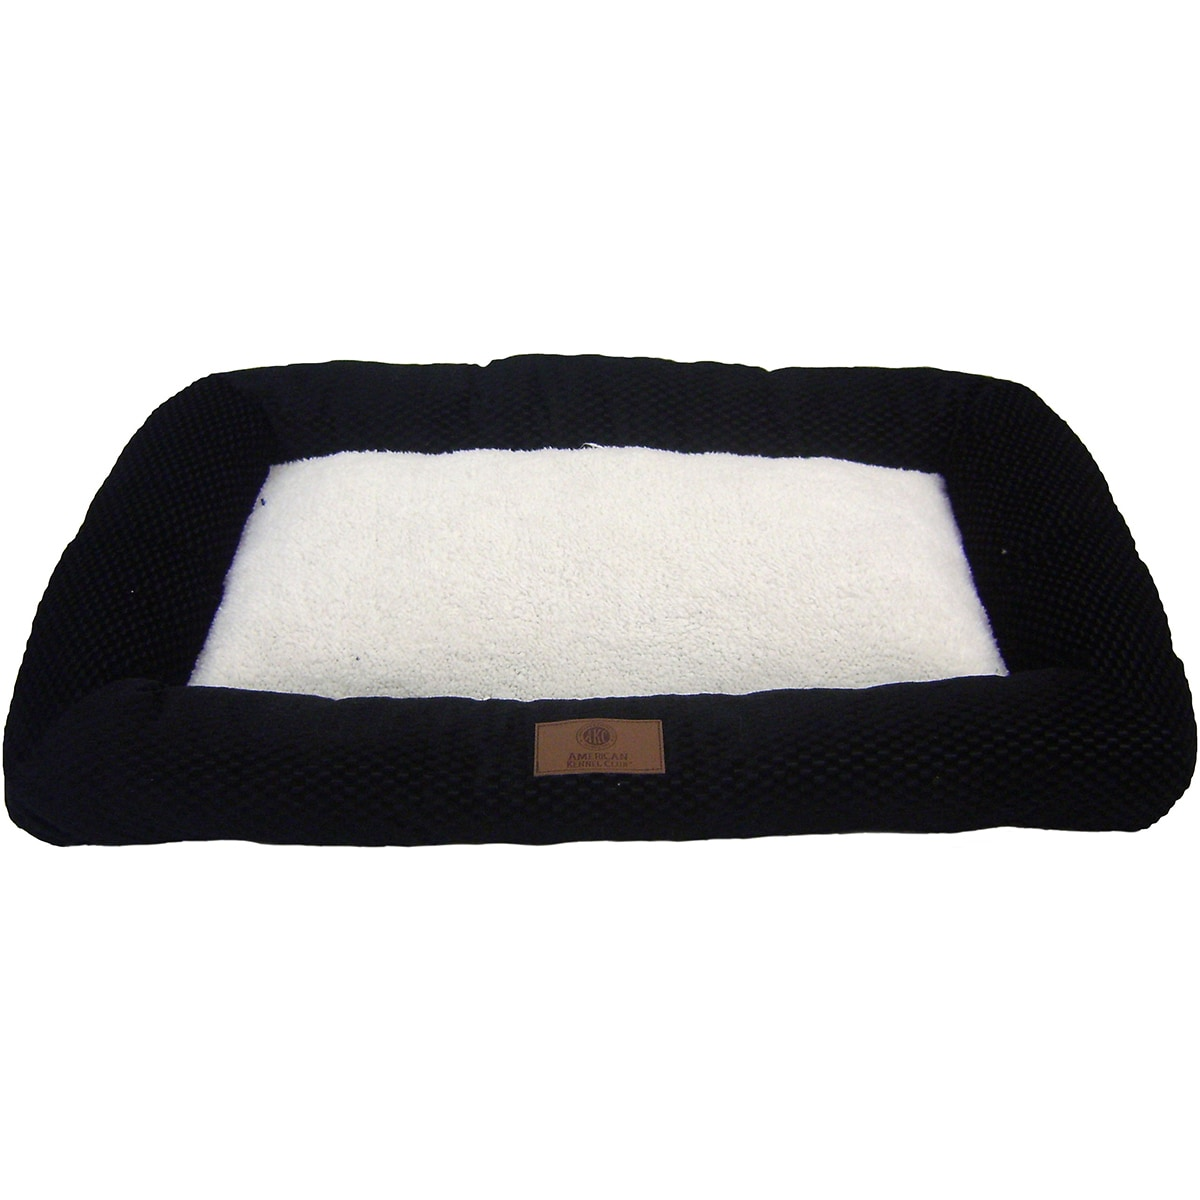 American Kennel Club Bolster Pet Crate Pad (Black - 2.75 ...